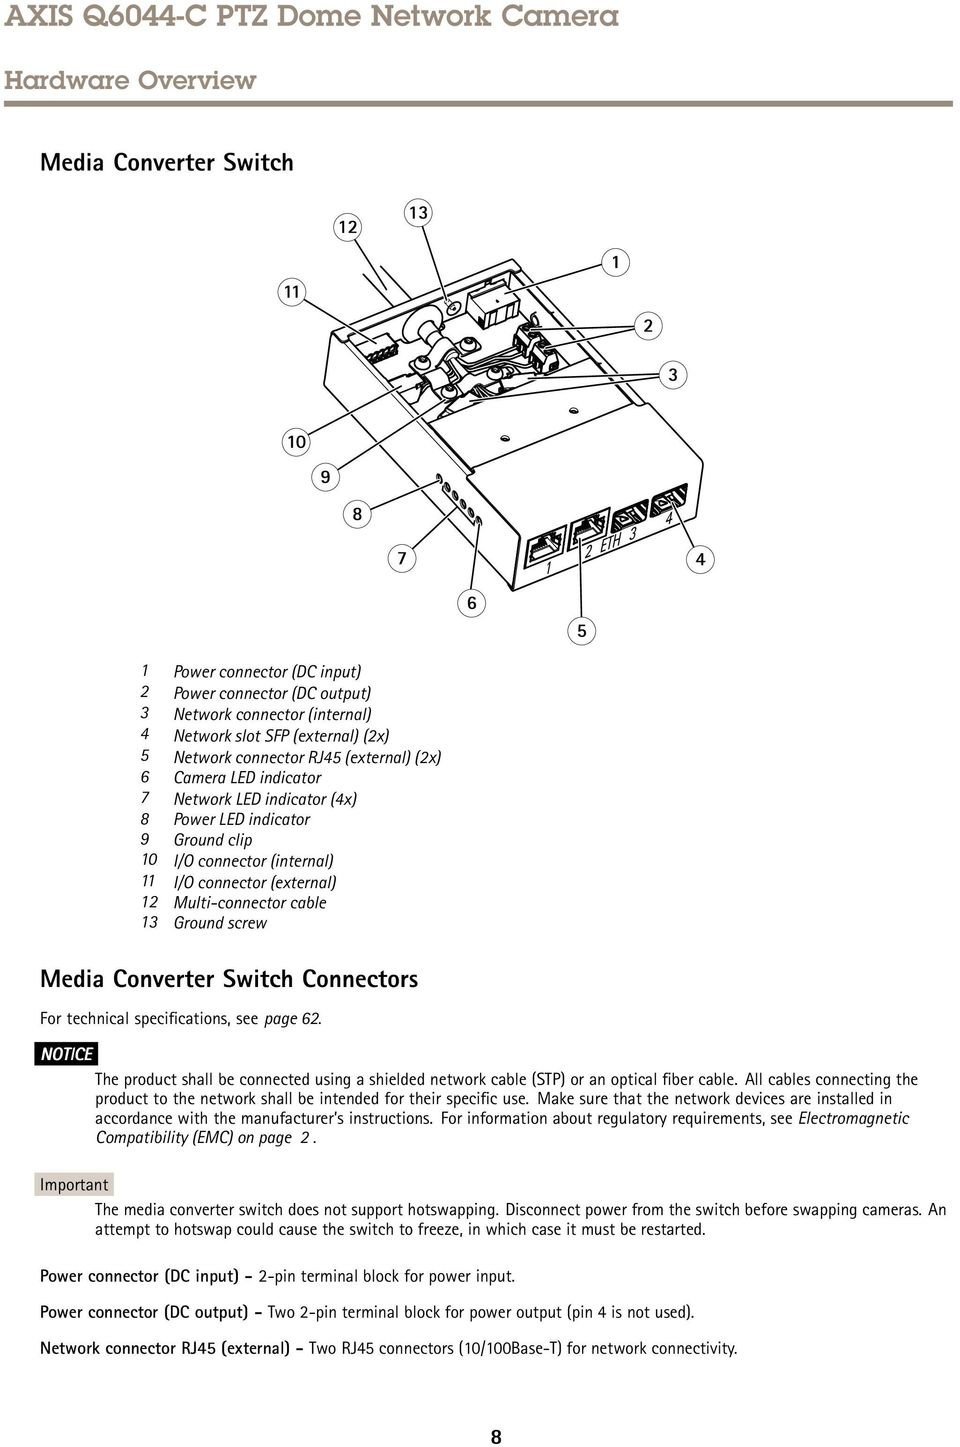 Multi-connector cable 13 Ground screw Media Converter Switch Connectors For technical specifications, see page 62.